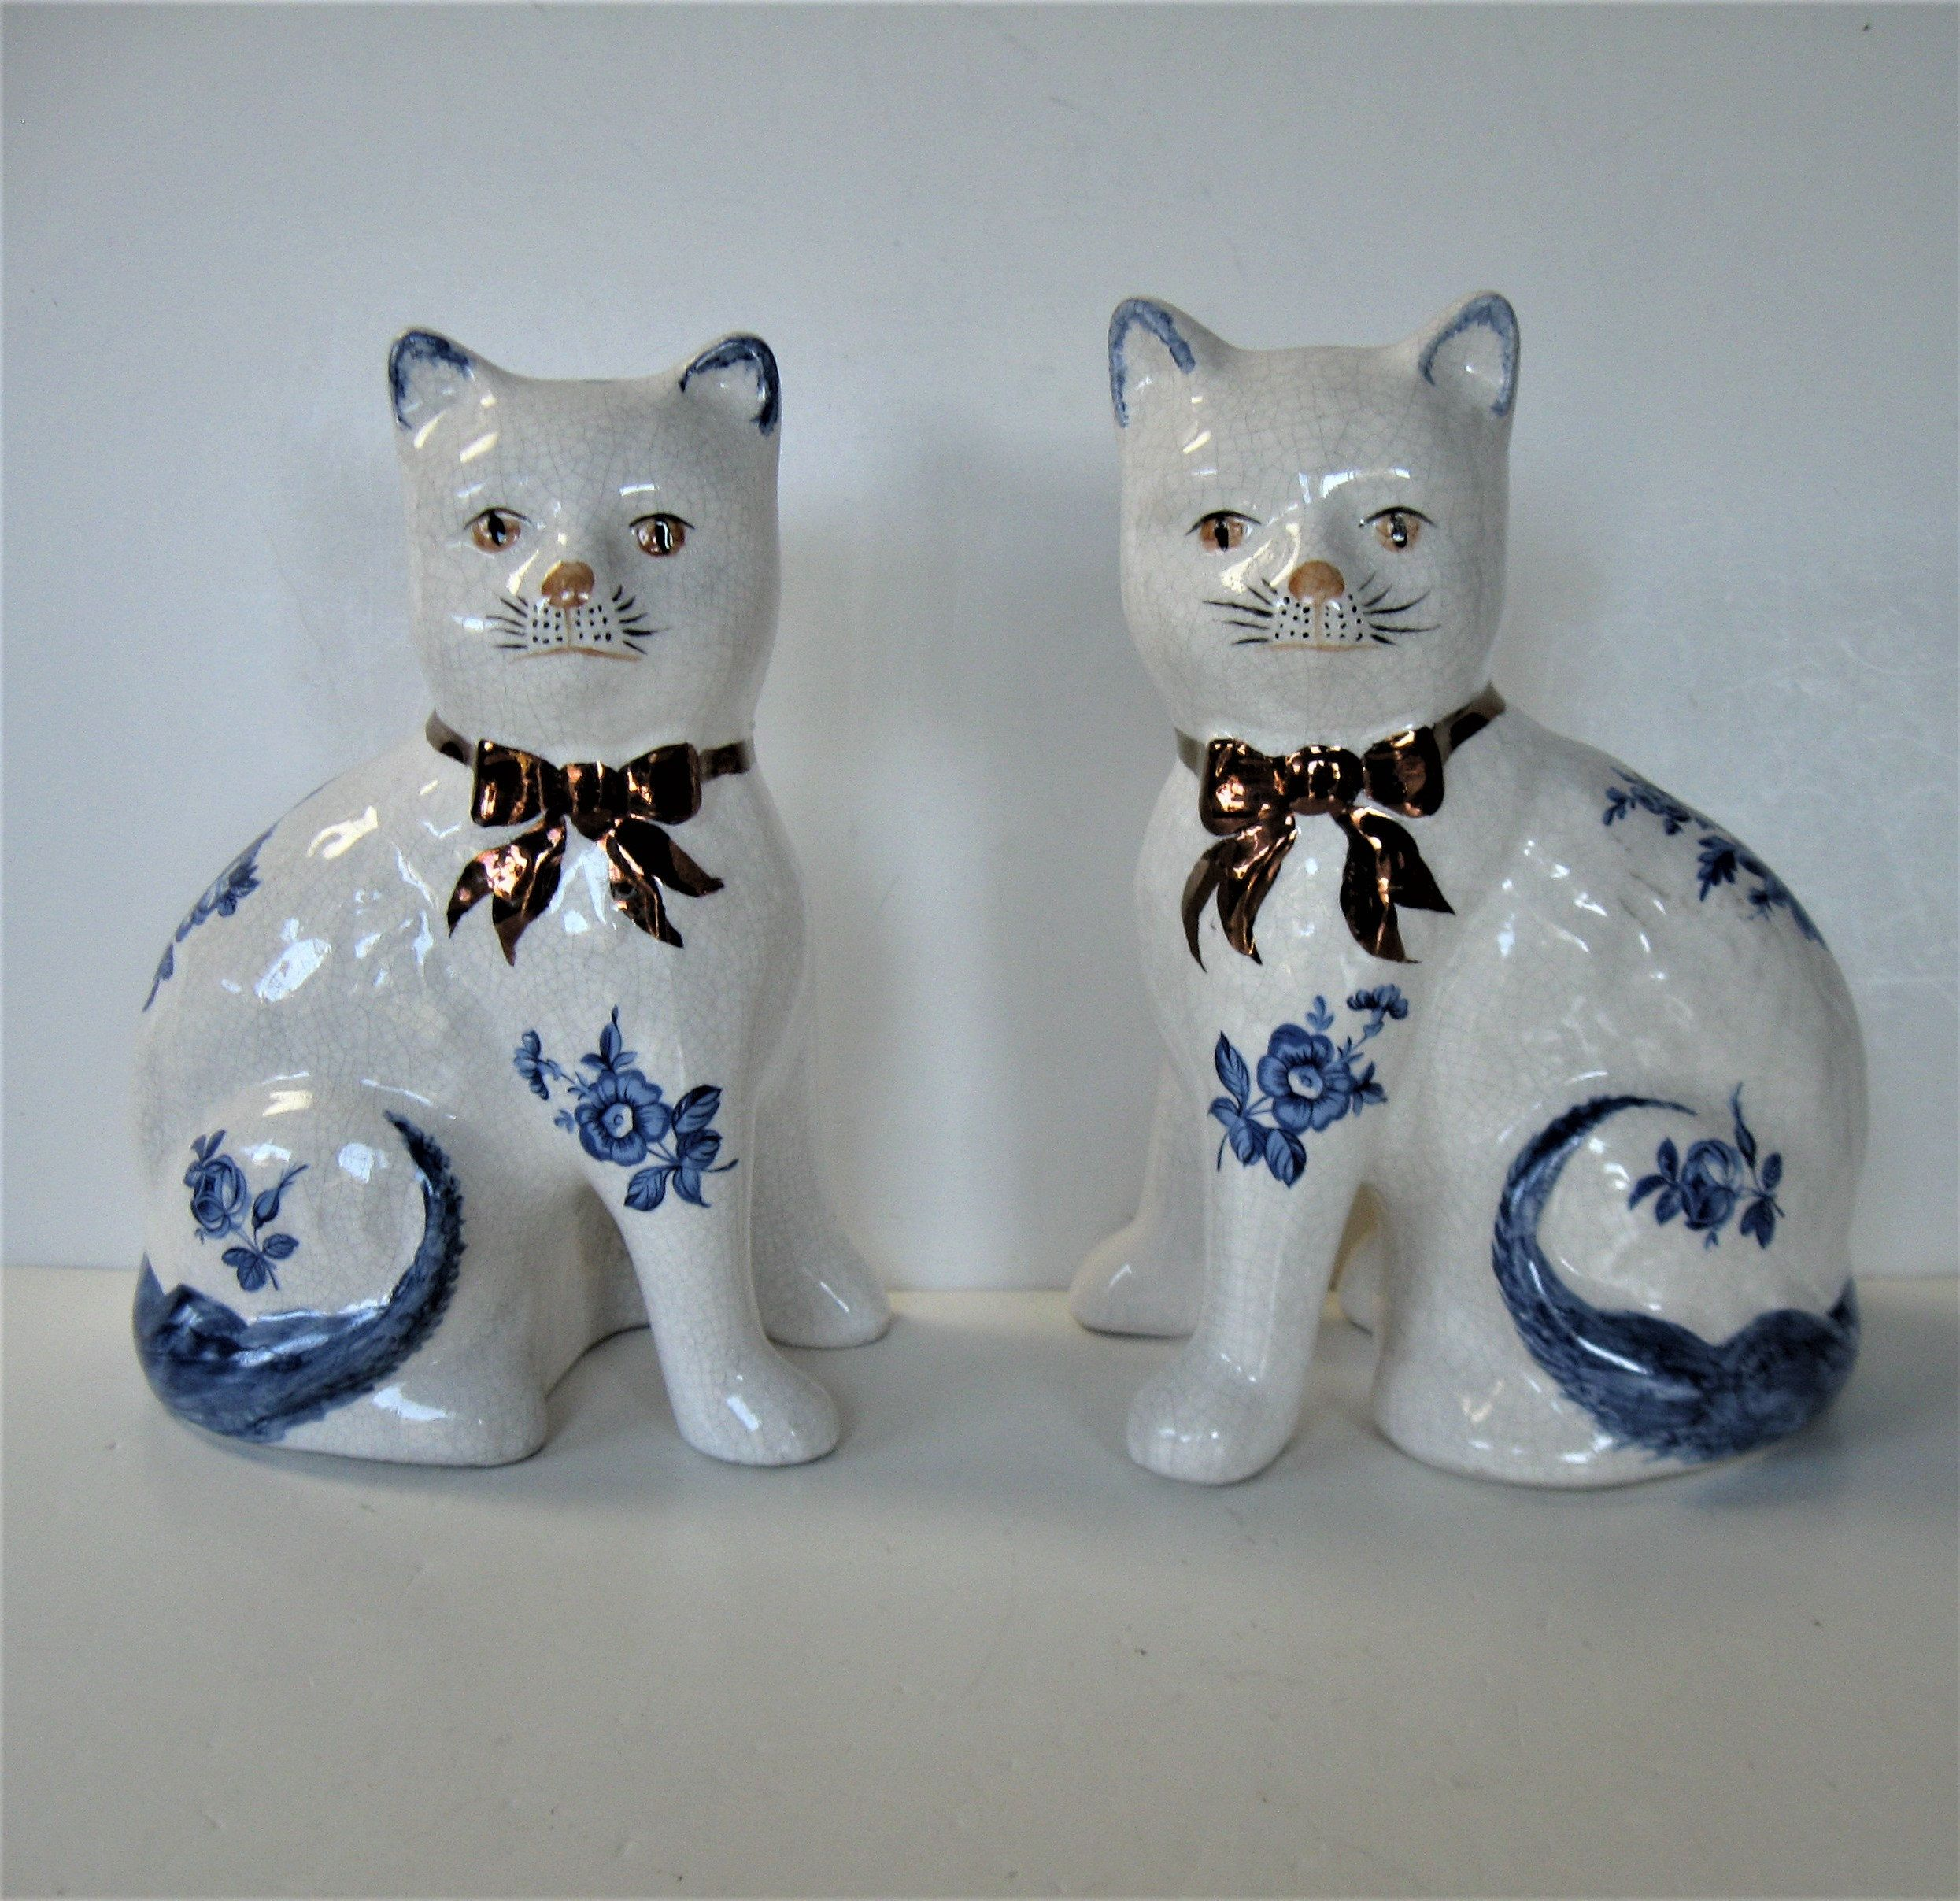 Vintage English Stafforshire Ware ceramic mantle kitty